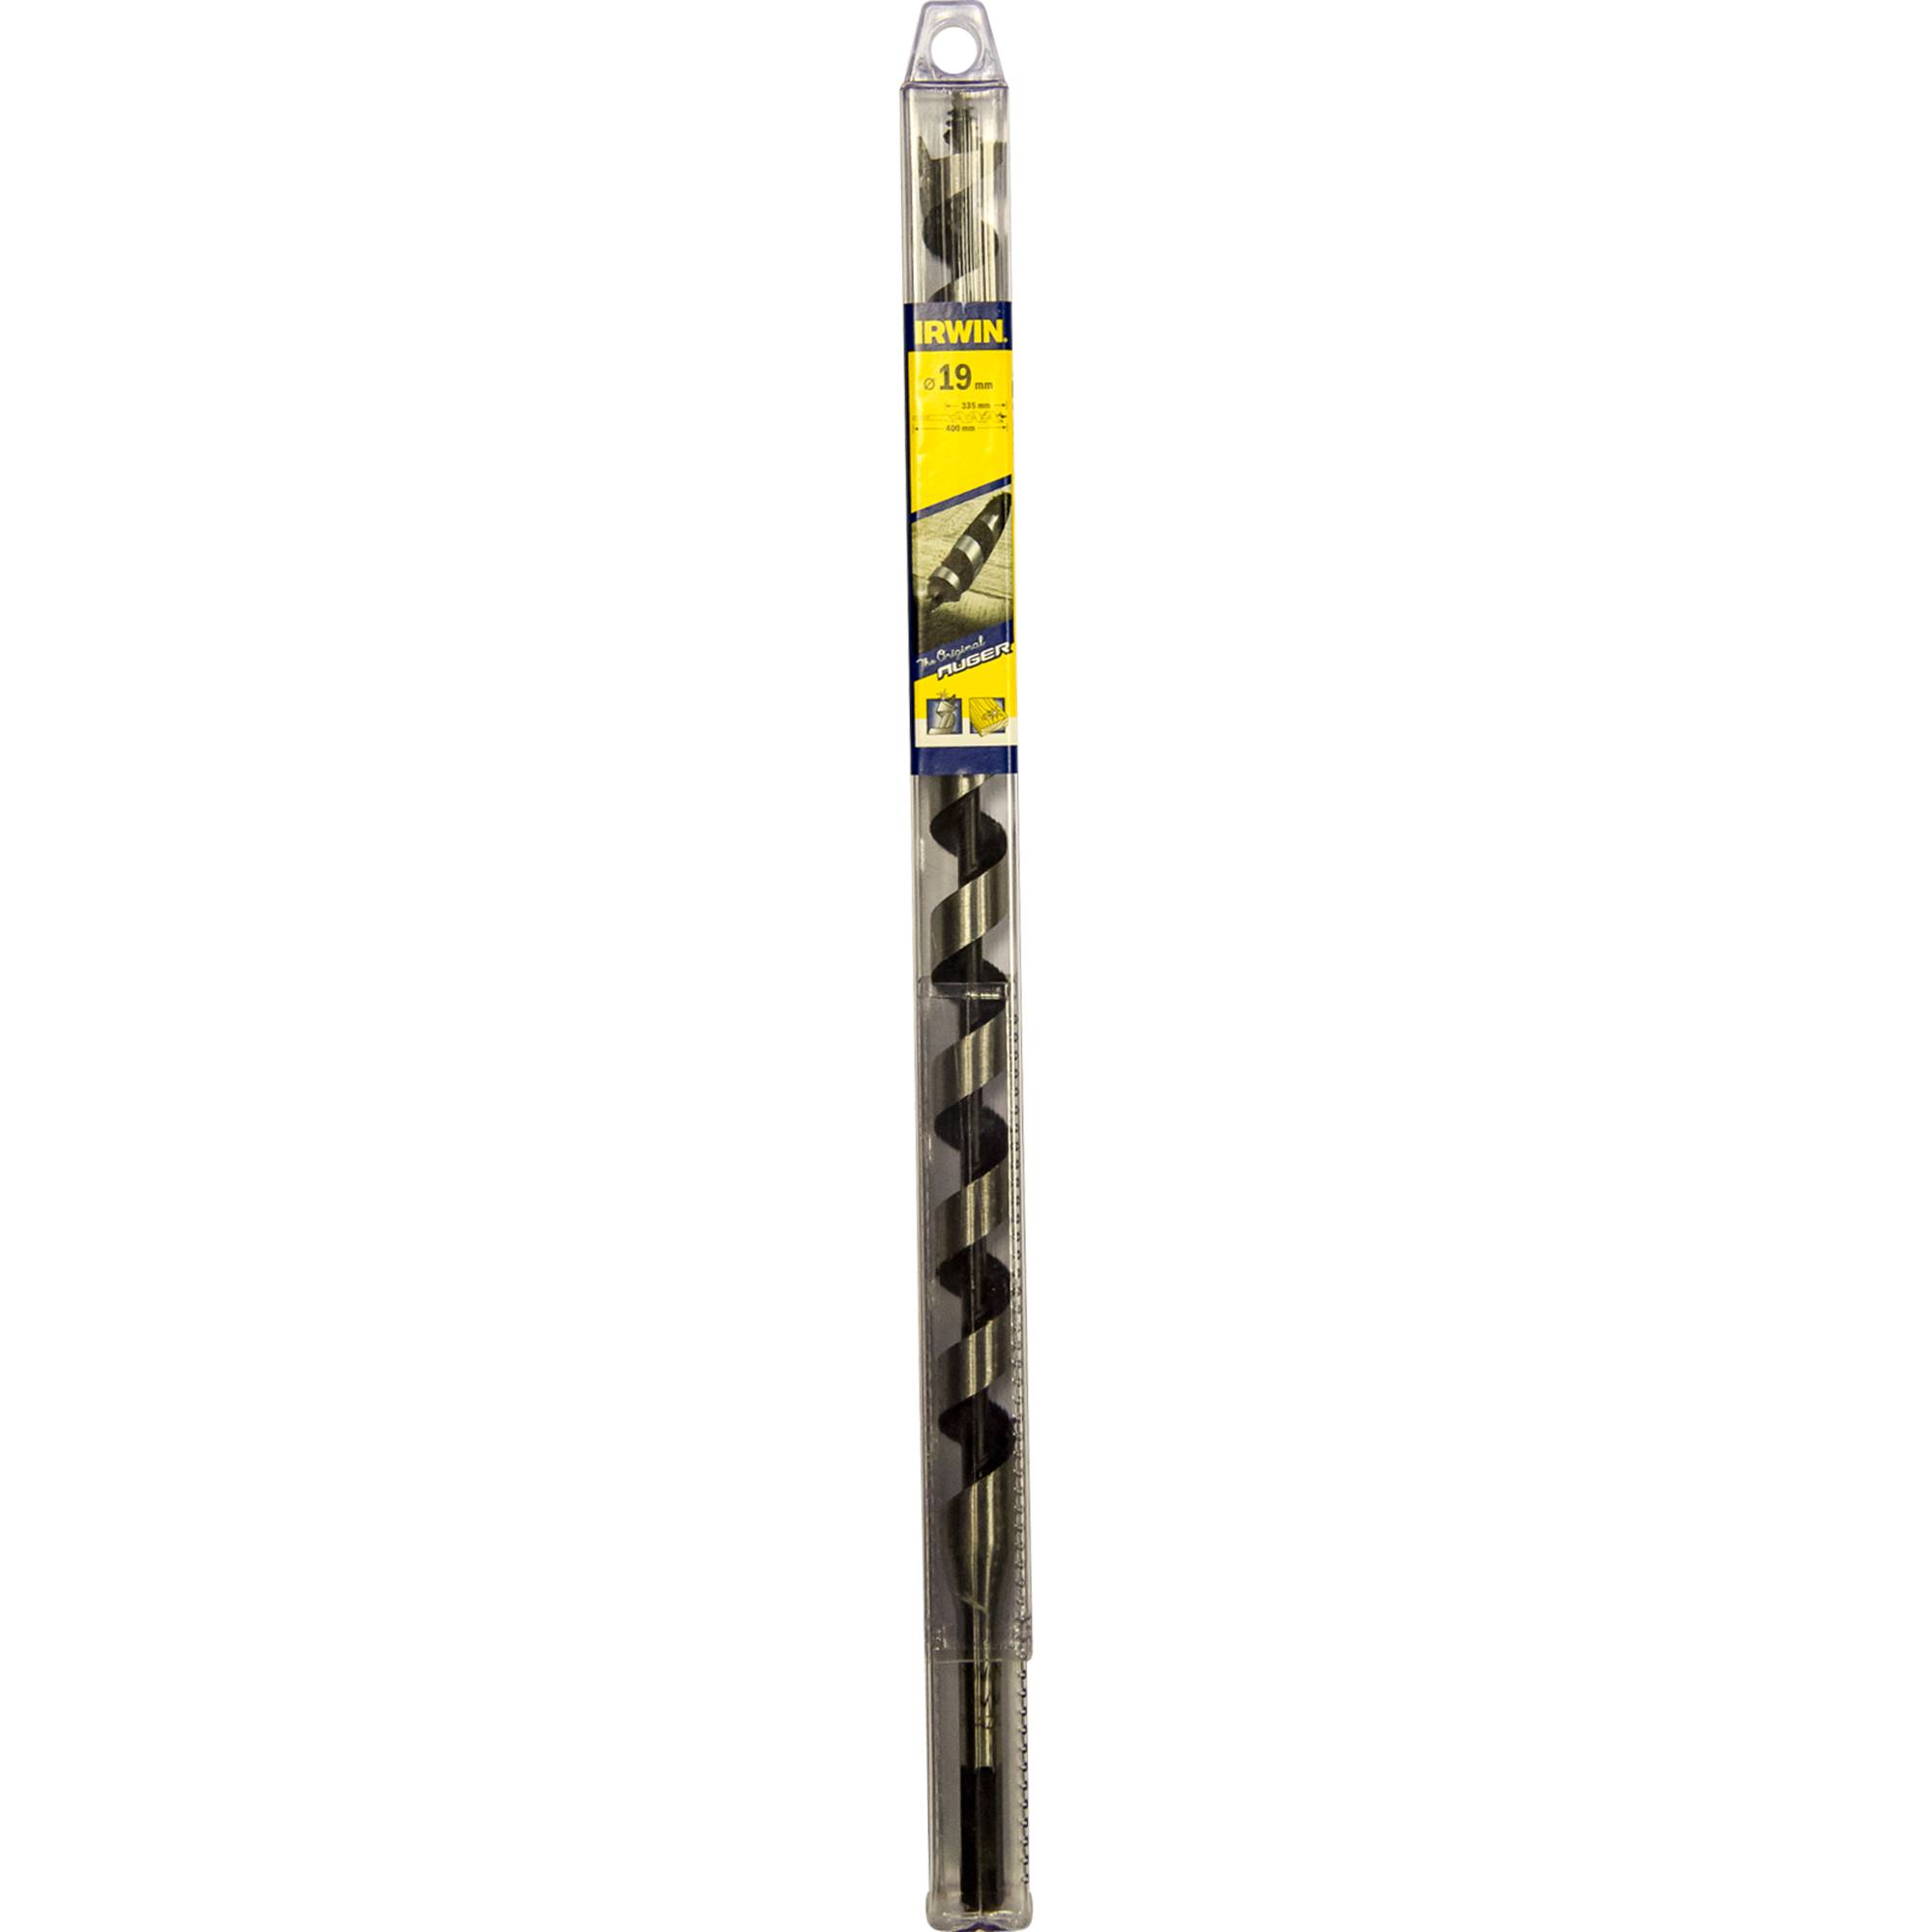 IRWIN 10502752 Wood Auger Drill Bit Long Series 13 x 400mm